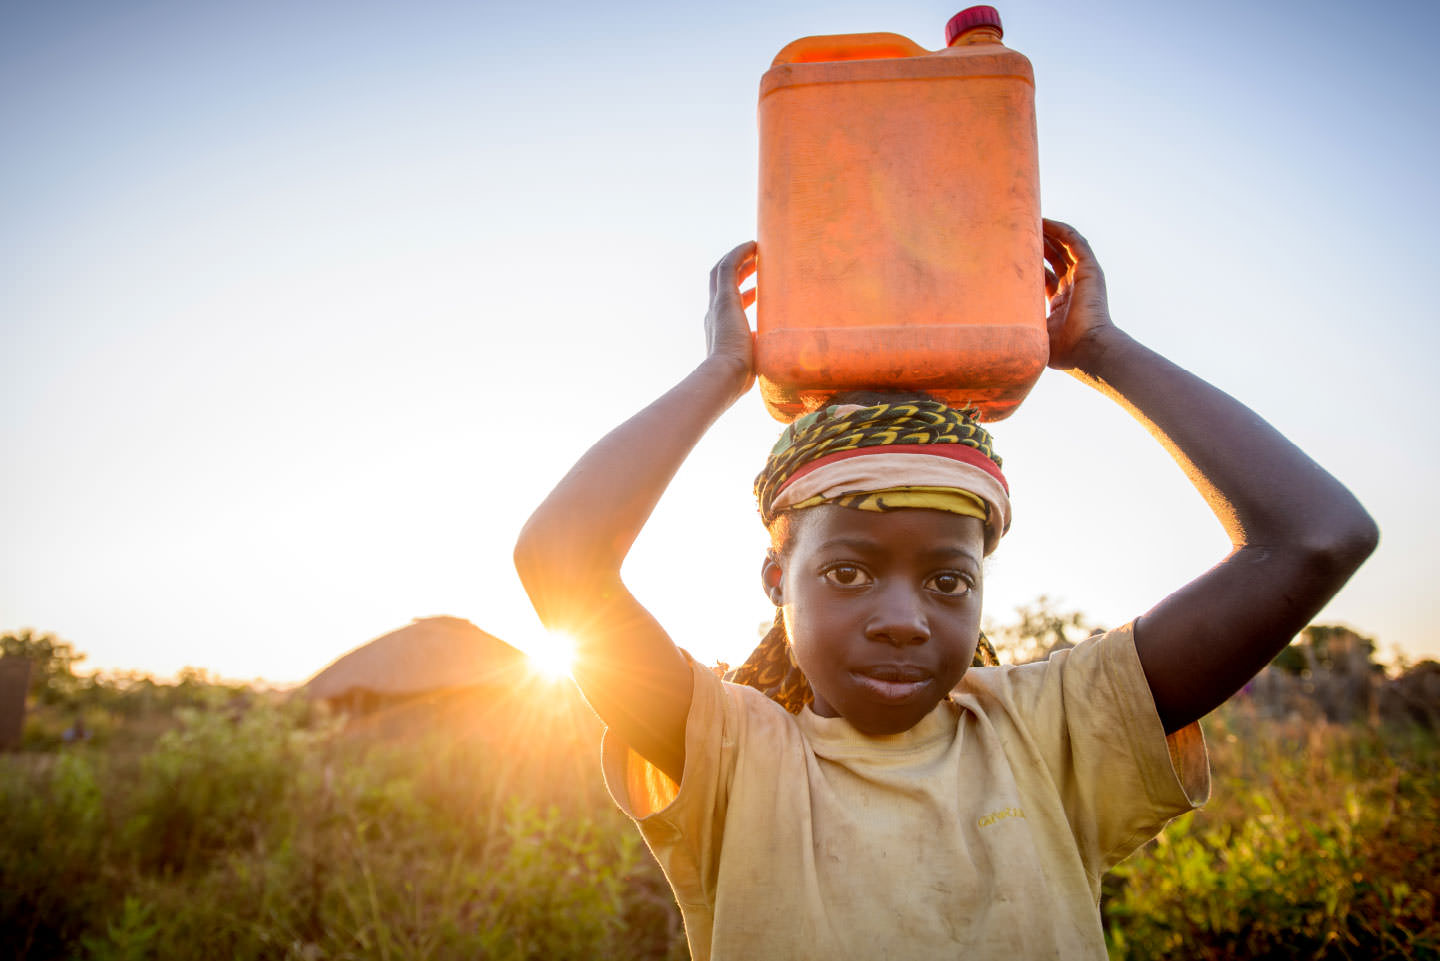 Marita would fetch water and firewood to help Marta's mother care for her best friend.